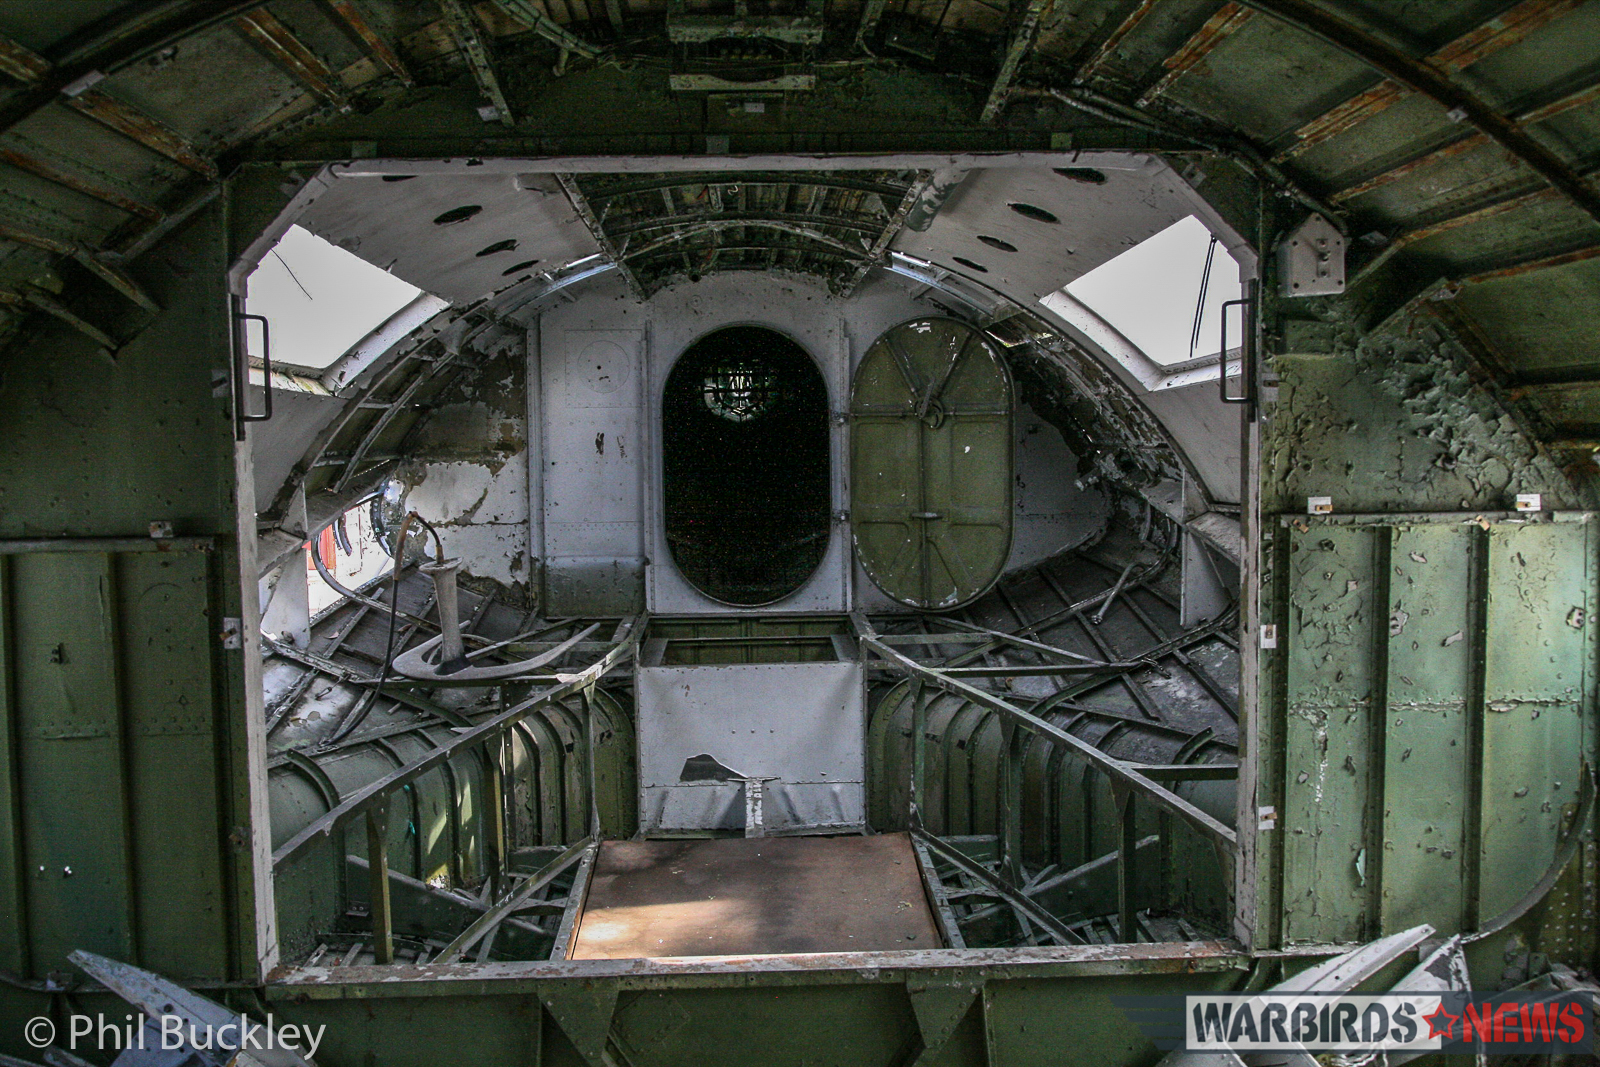 A great view inside the Catalina's waist position. (photo by Phil Buckley)